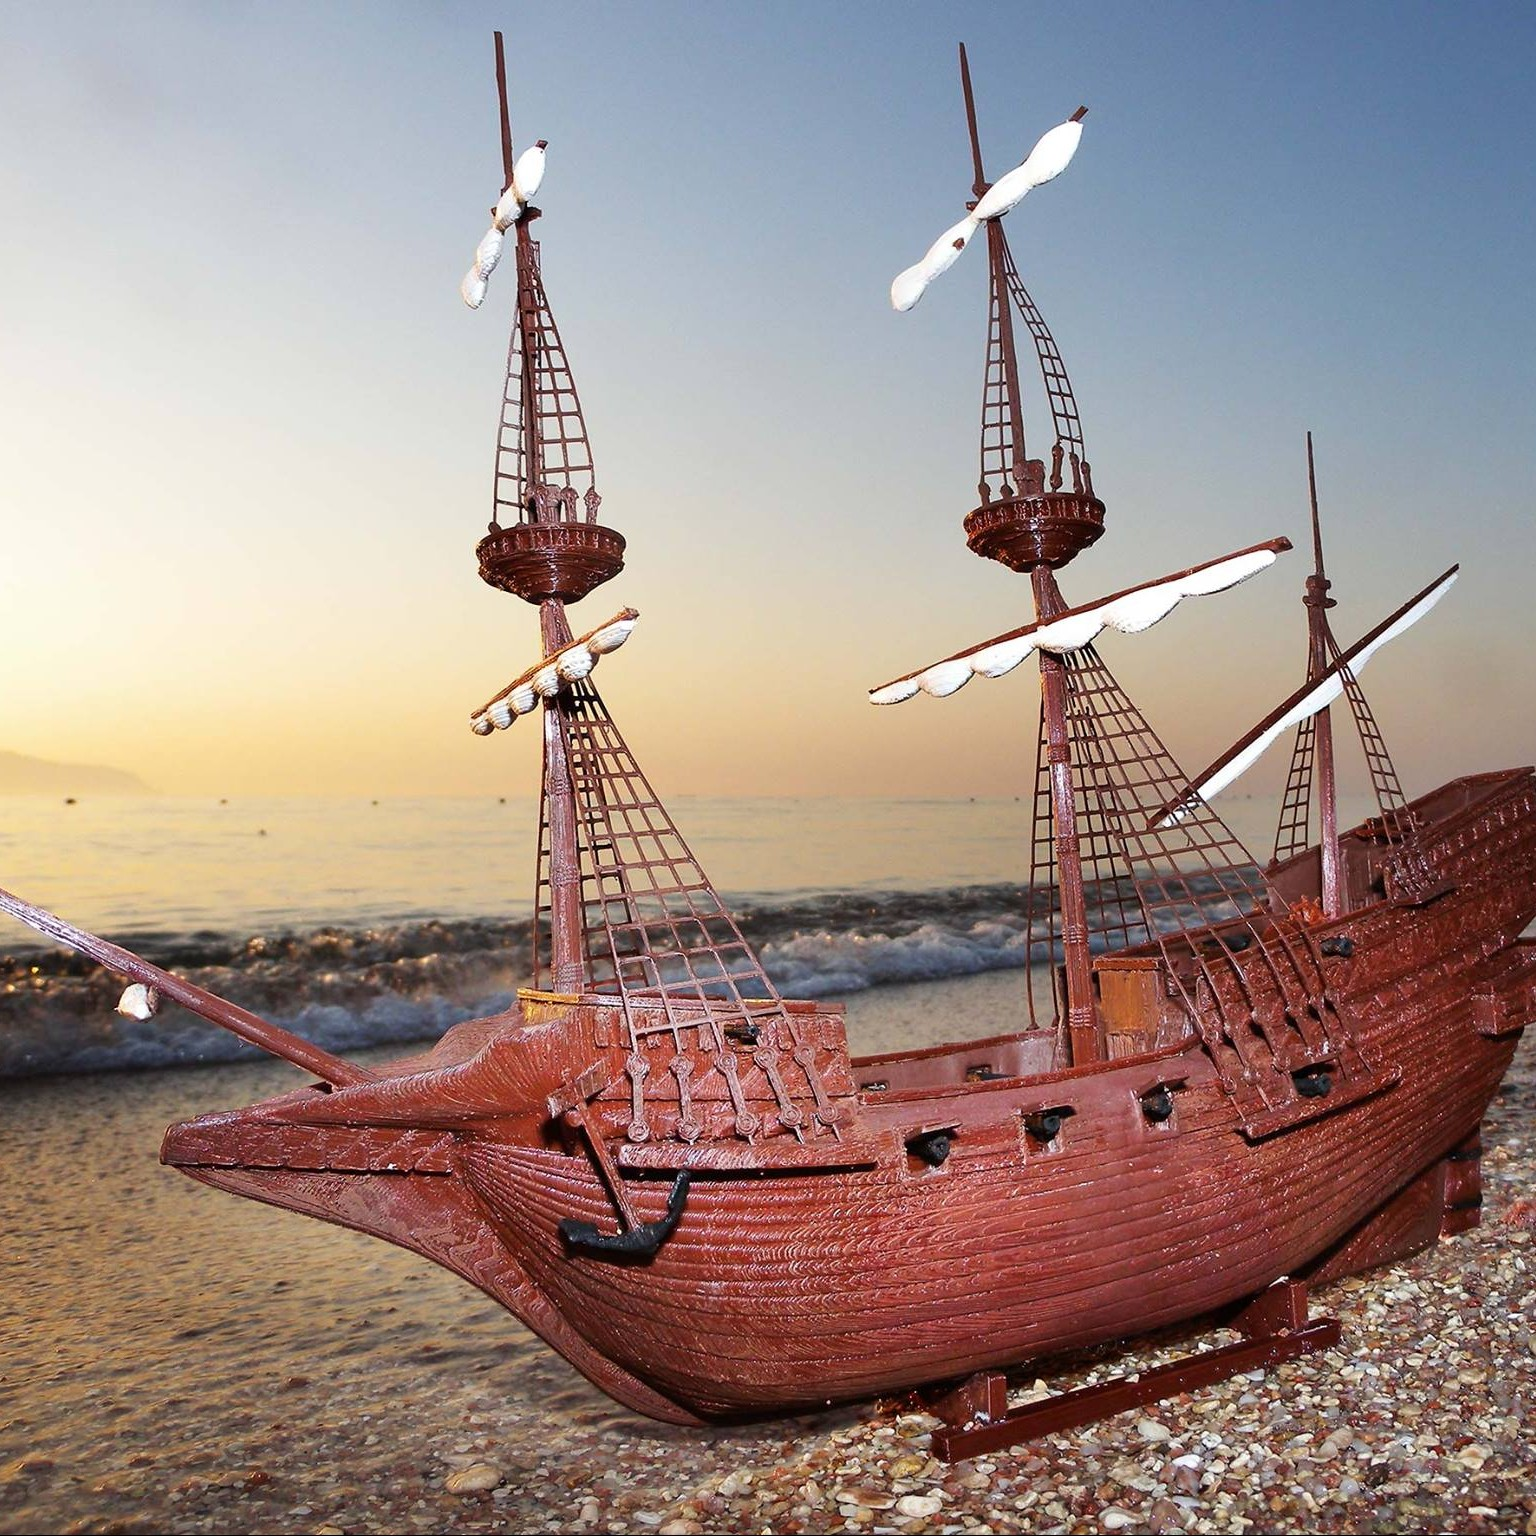 3D Artist Adds Another Chapter to the History of Sir Drake's Golden Hind